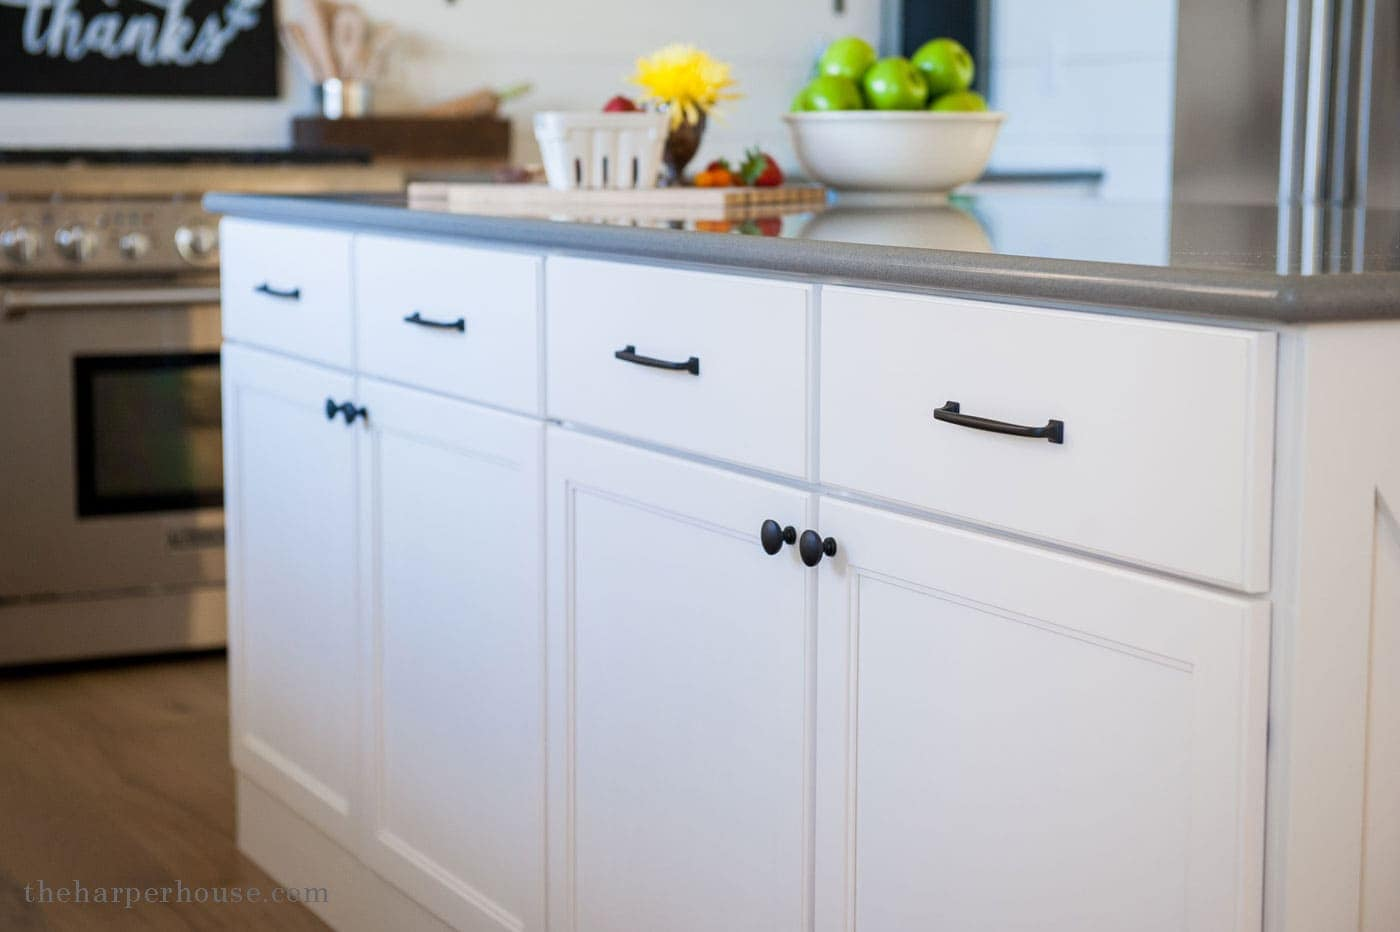 Exceptionnel Affordable Kitchen Hardware, Farmhouse Style Kitchen Cabinet Hardware For  Cheap! | Theharperhouse.com